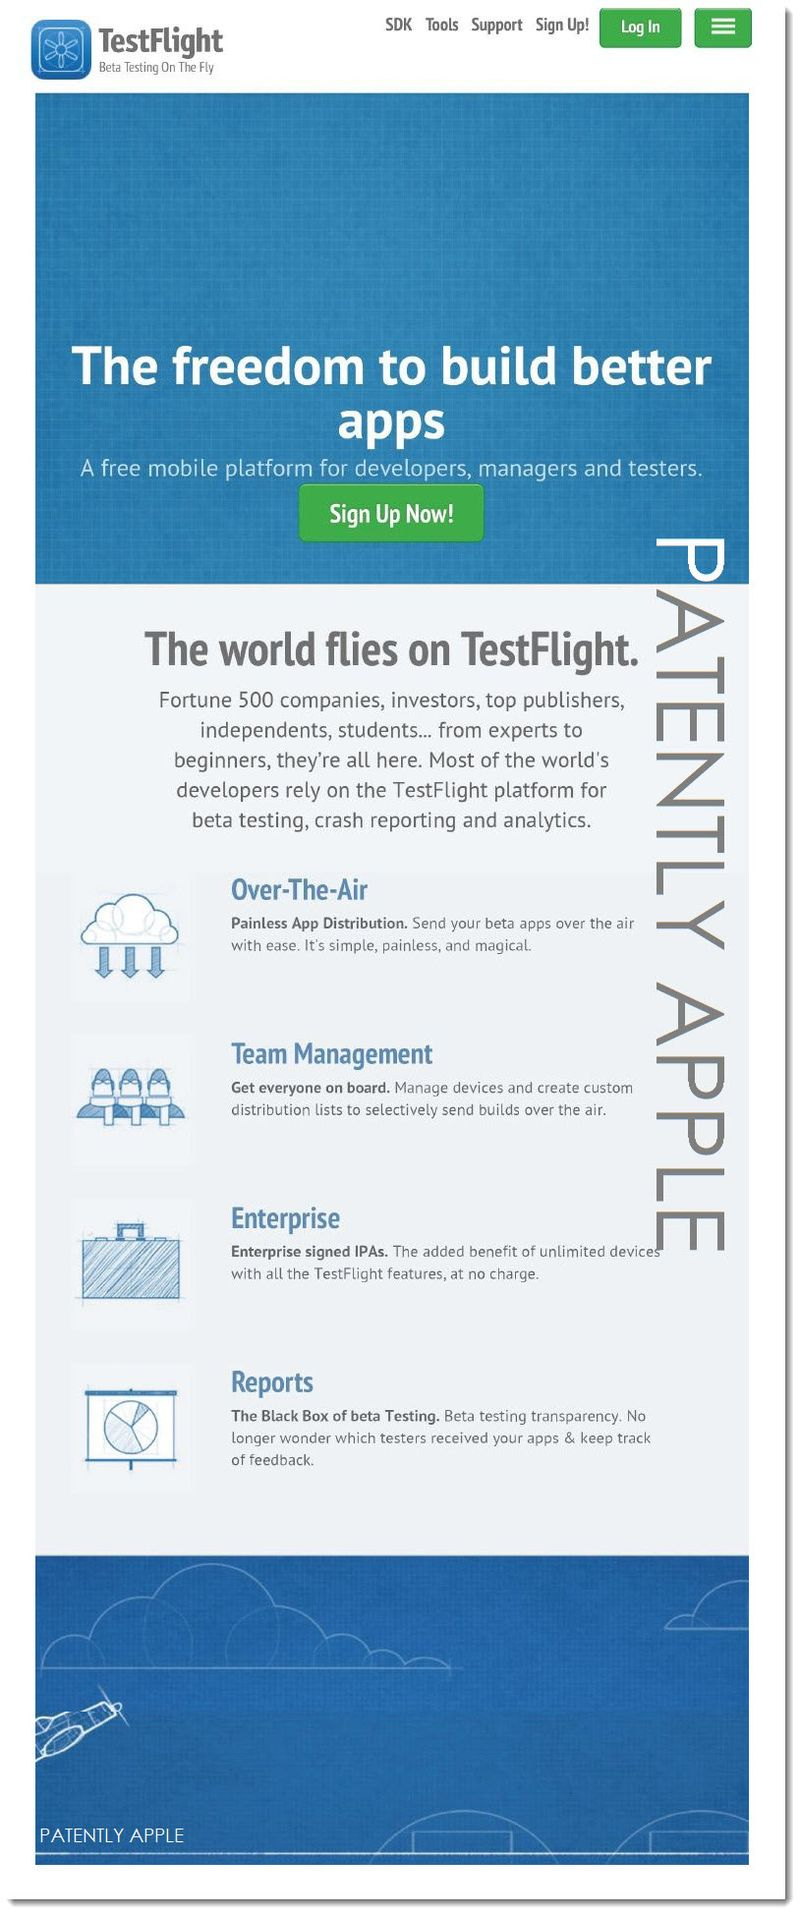 3AF2 - APPLE TESTFLIGHT TM SPECIMEN TO USPTO AUG 2014